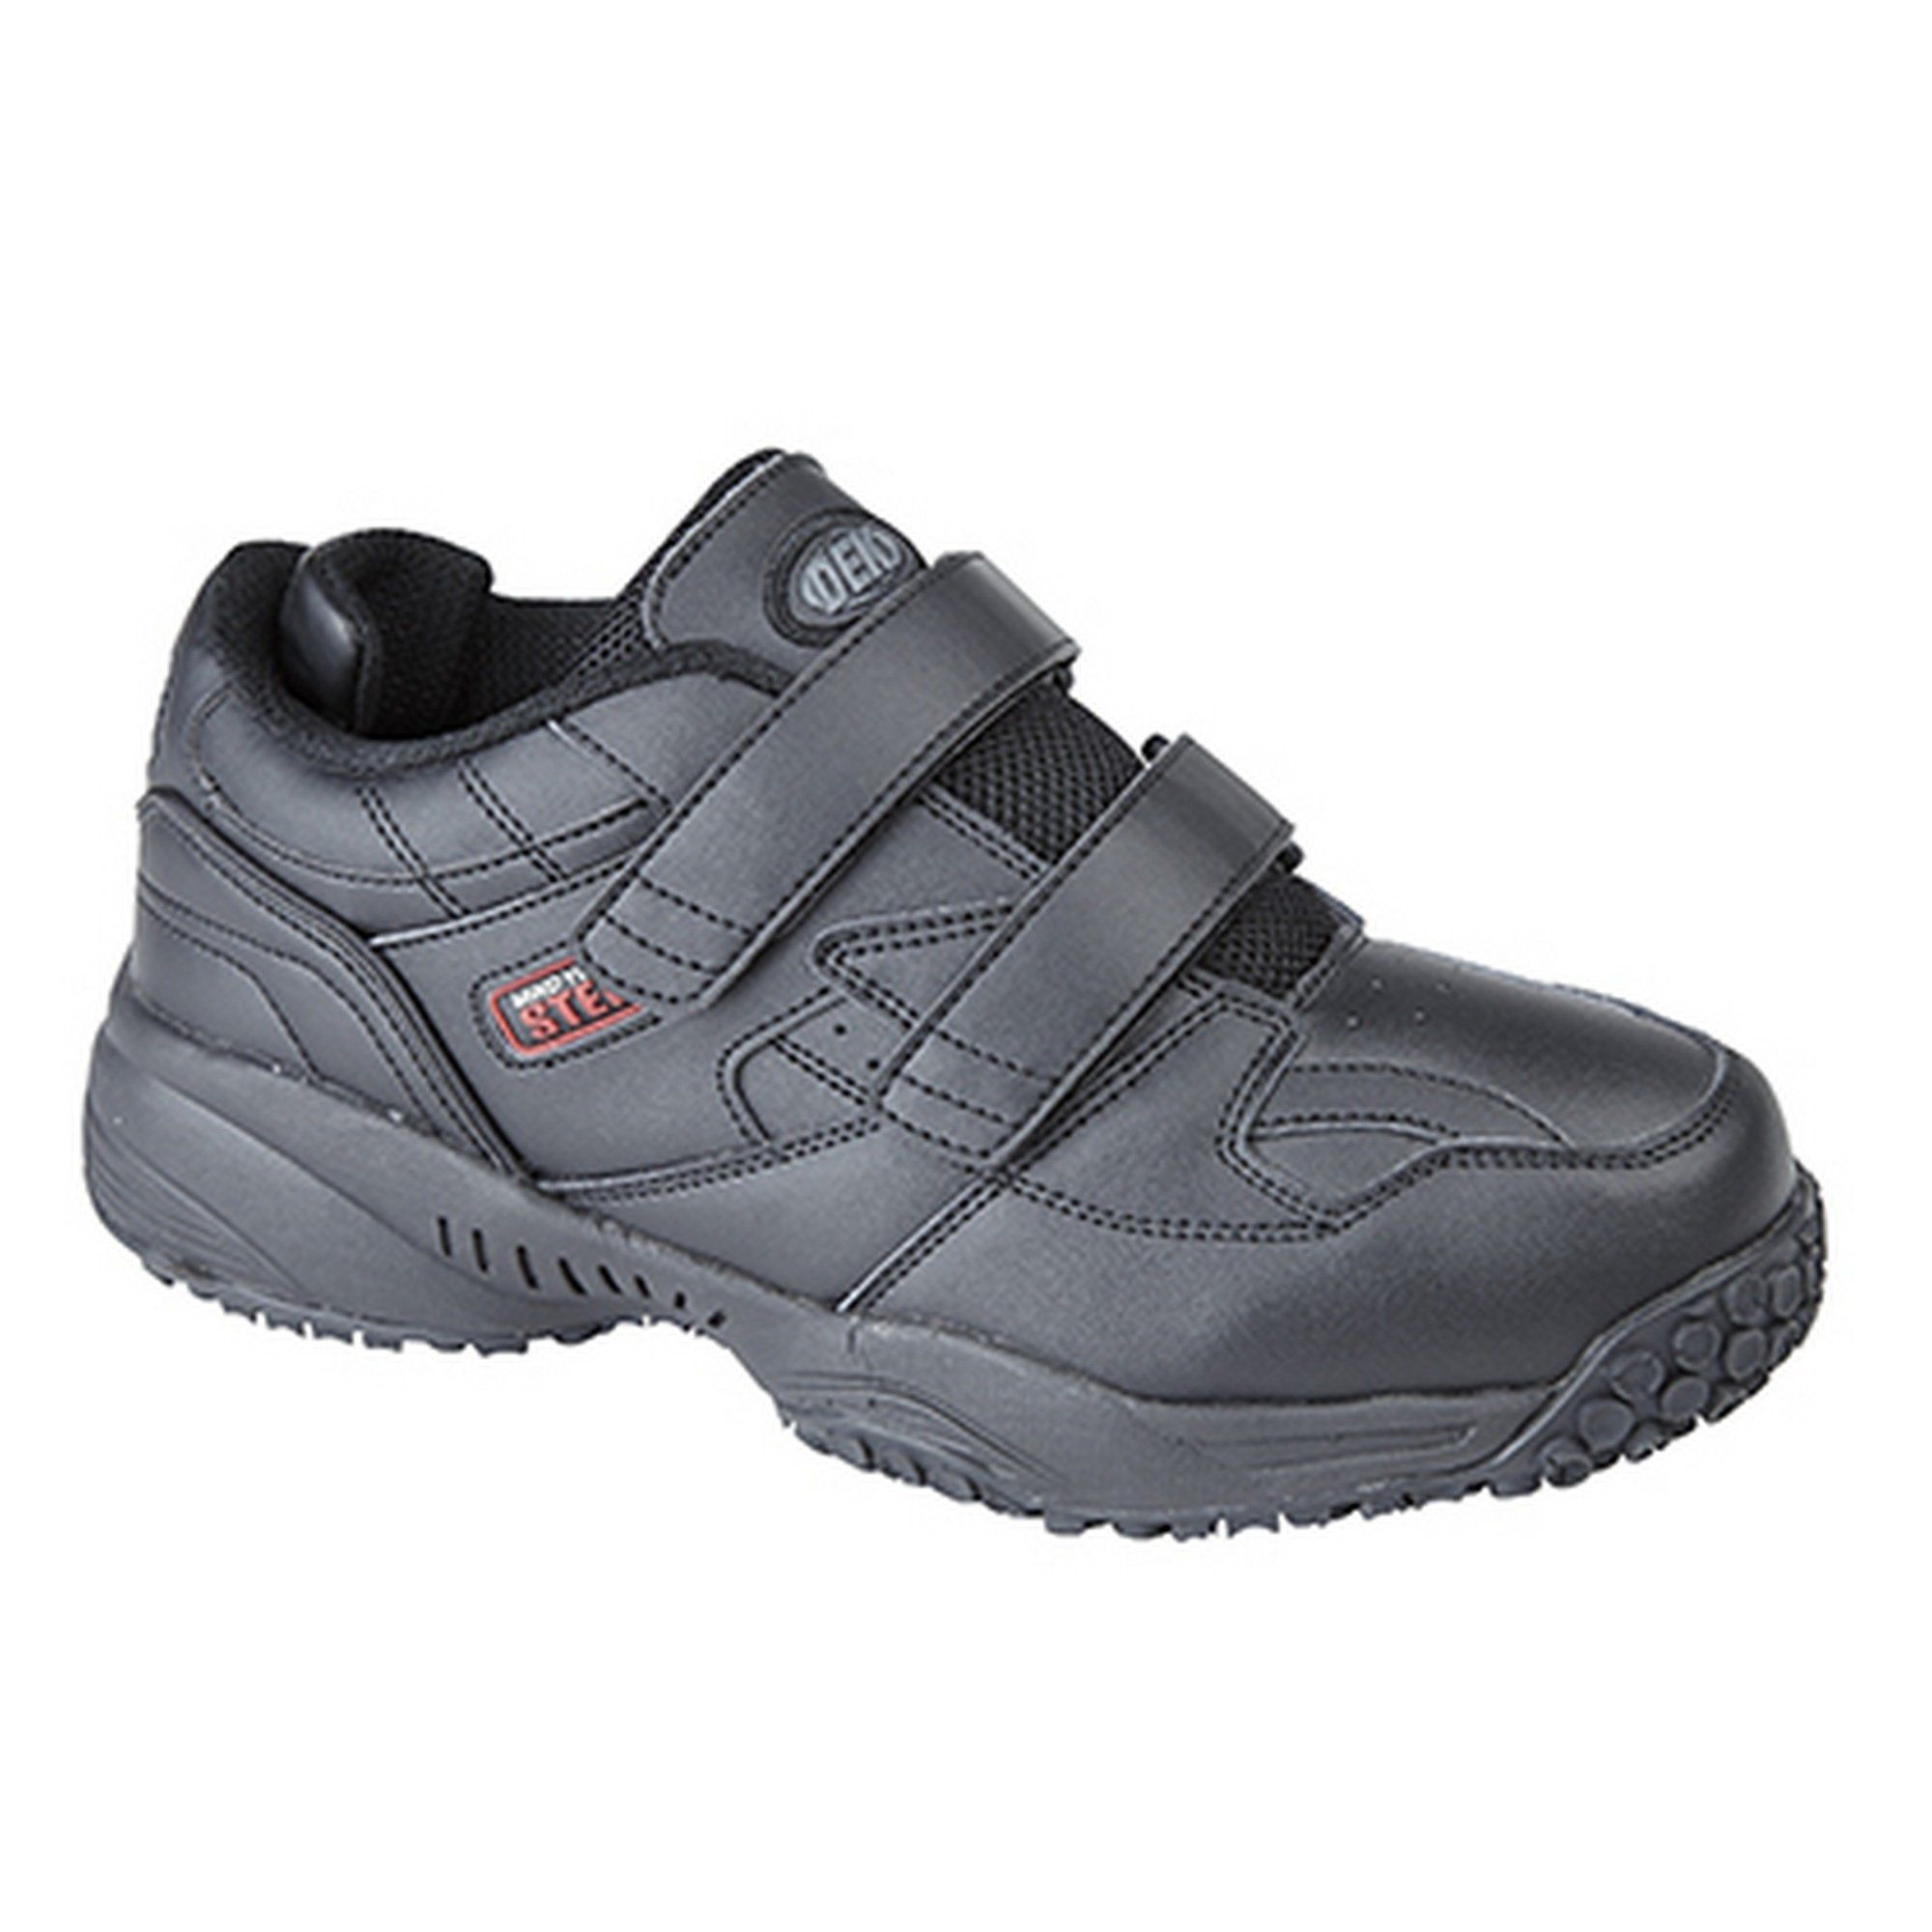 dek mind your step mens bandero comfort touch fastening trainers 12 us black awesome products selected by anna churchill pinterest bandero office desk 100